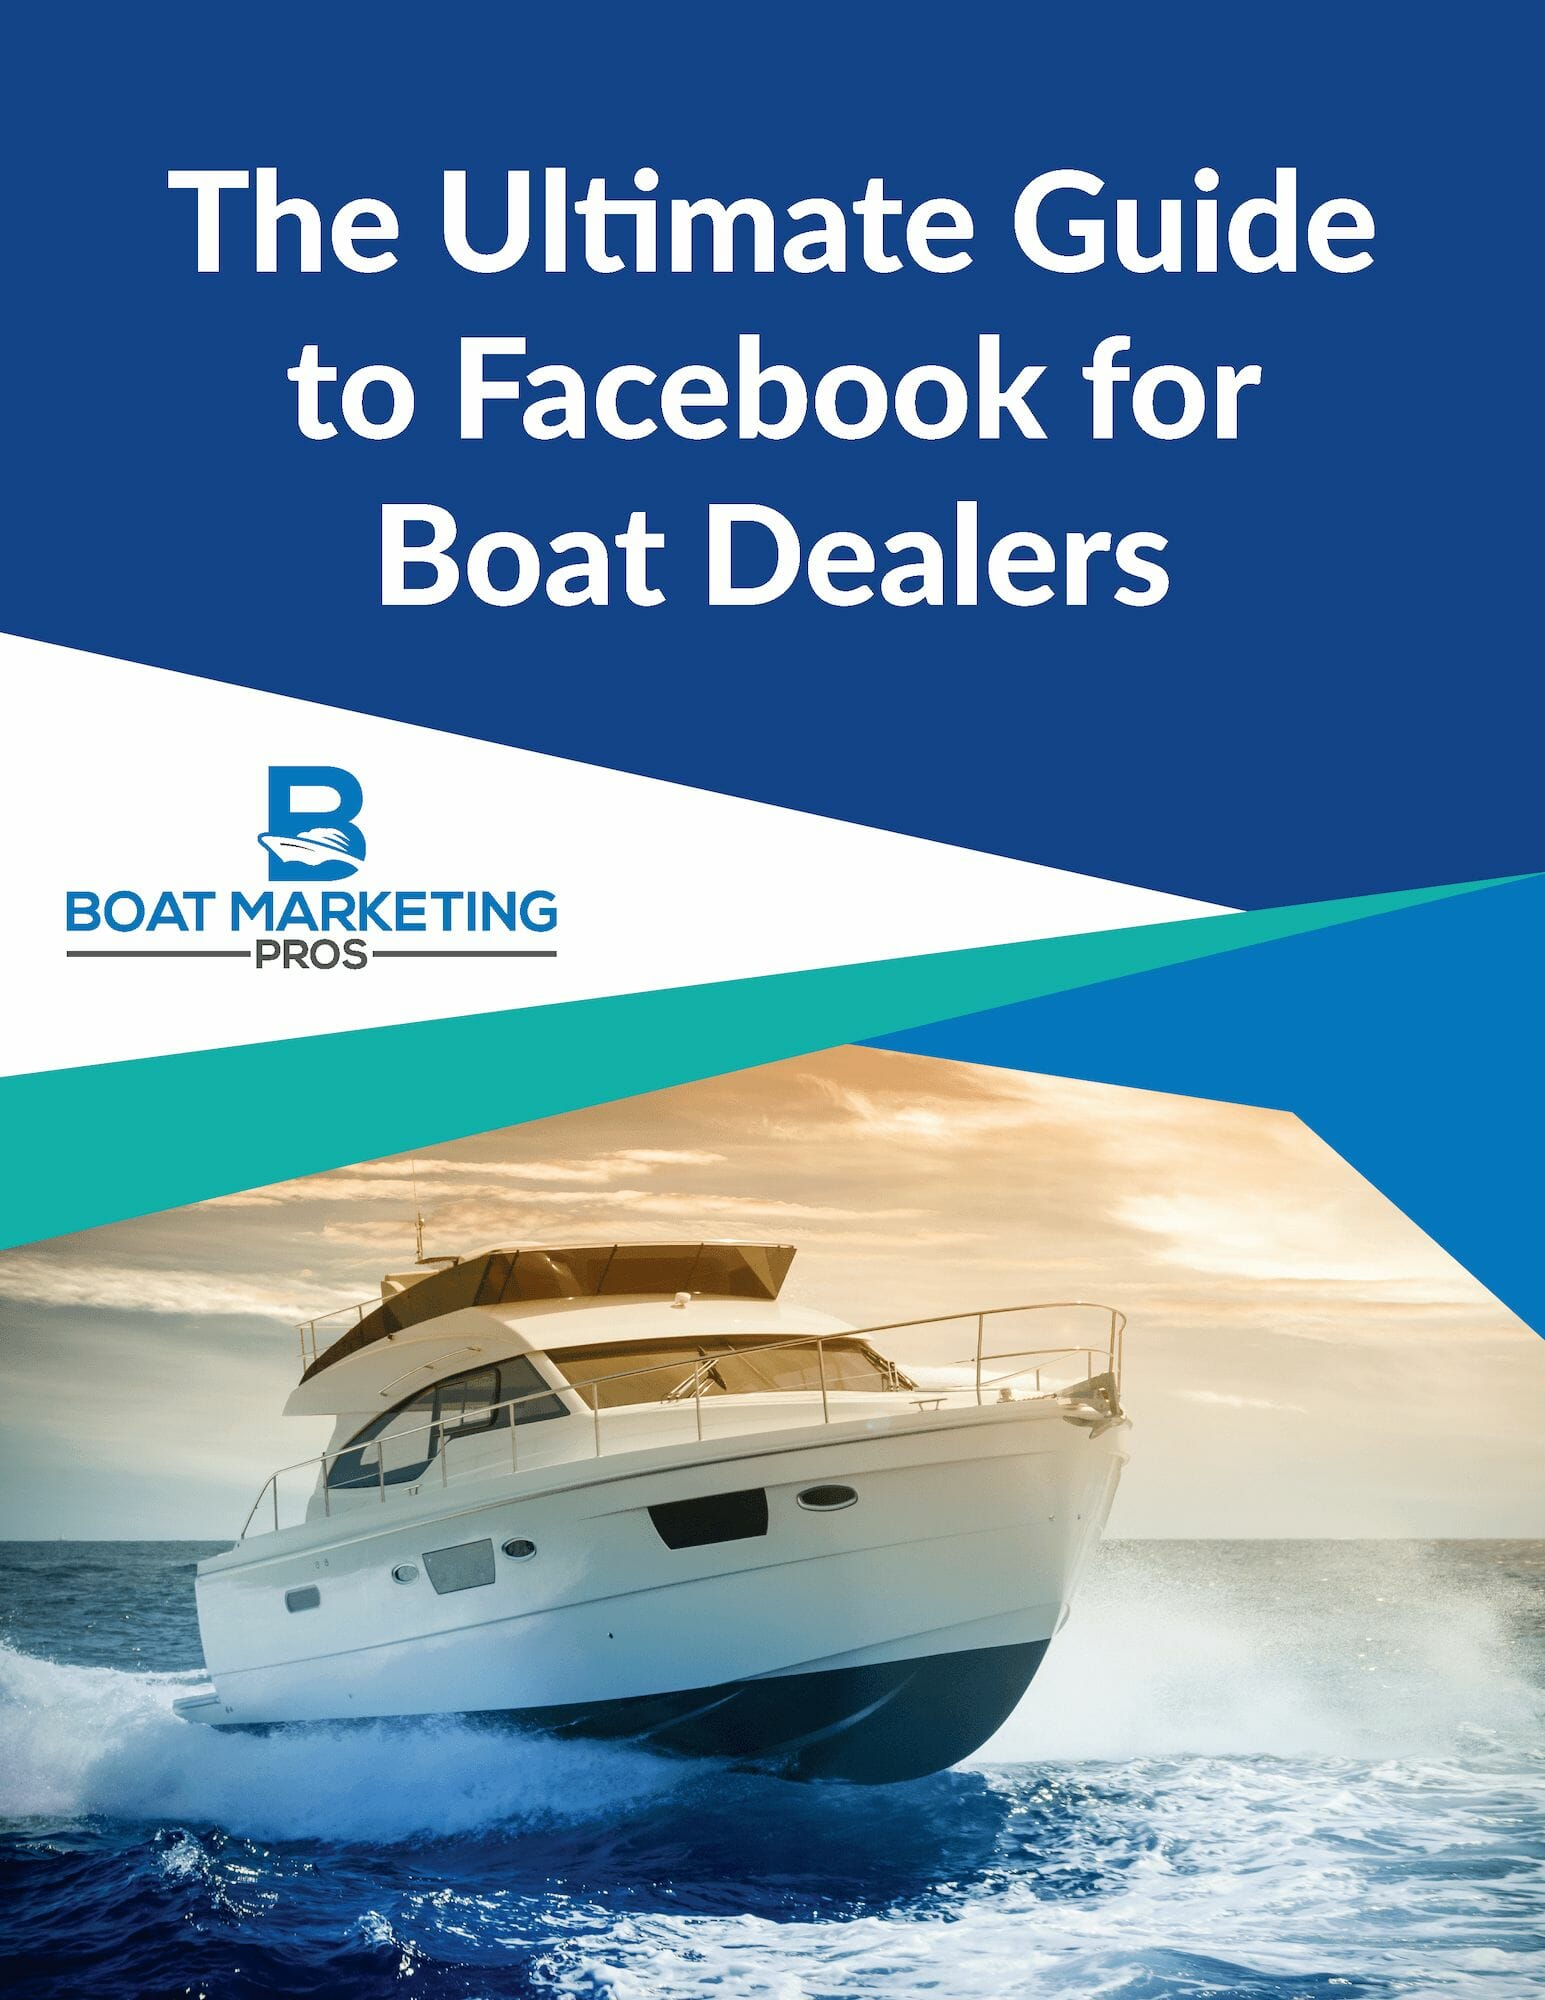 Cover of the Ultimate Guide to Facebook for Boat Dealers